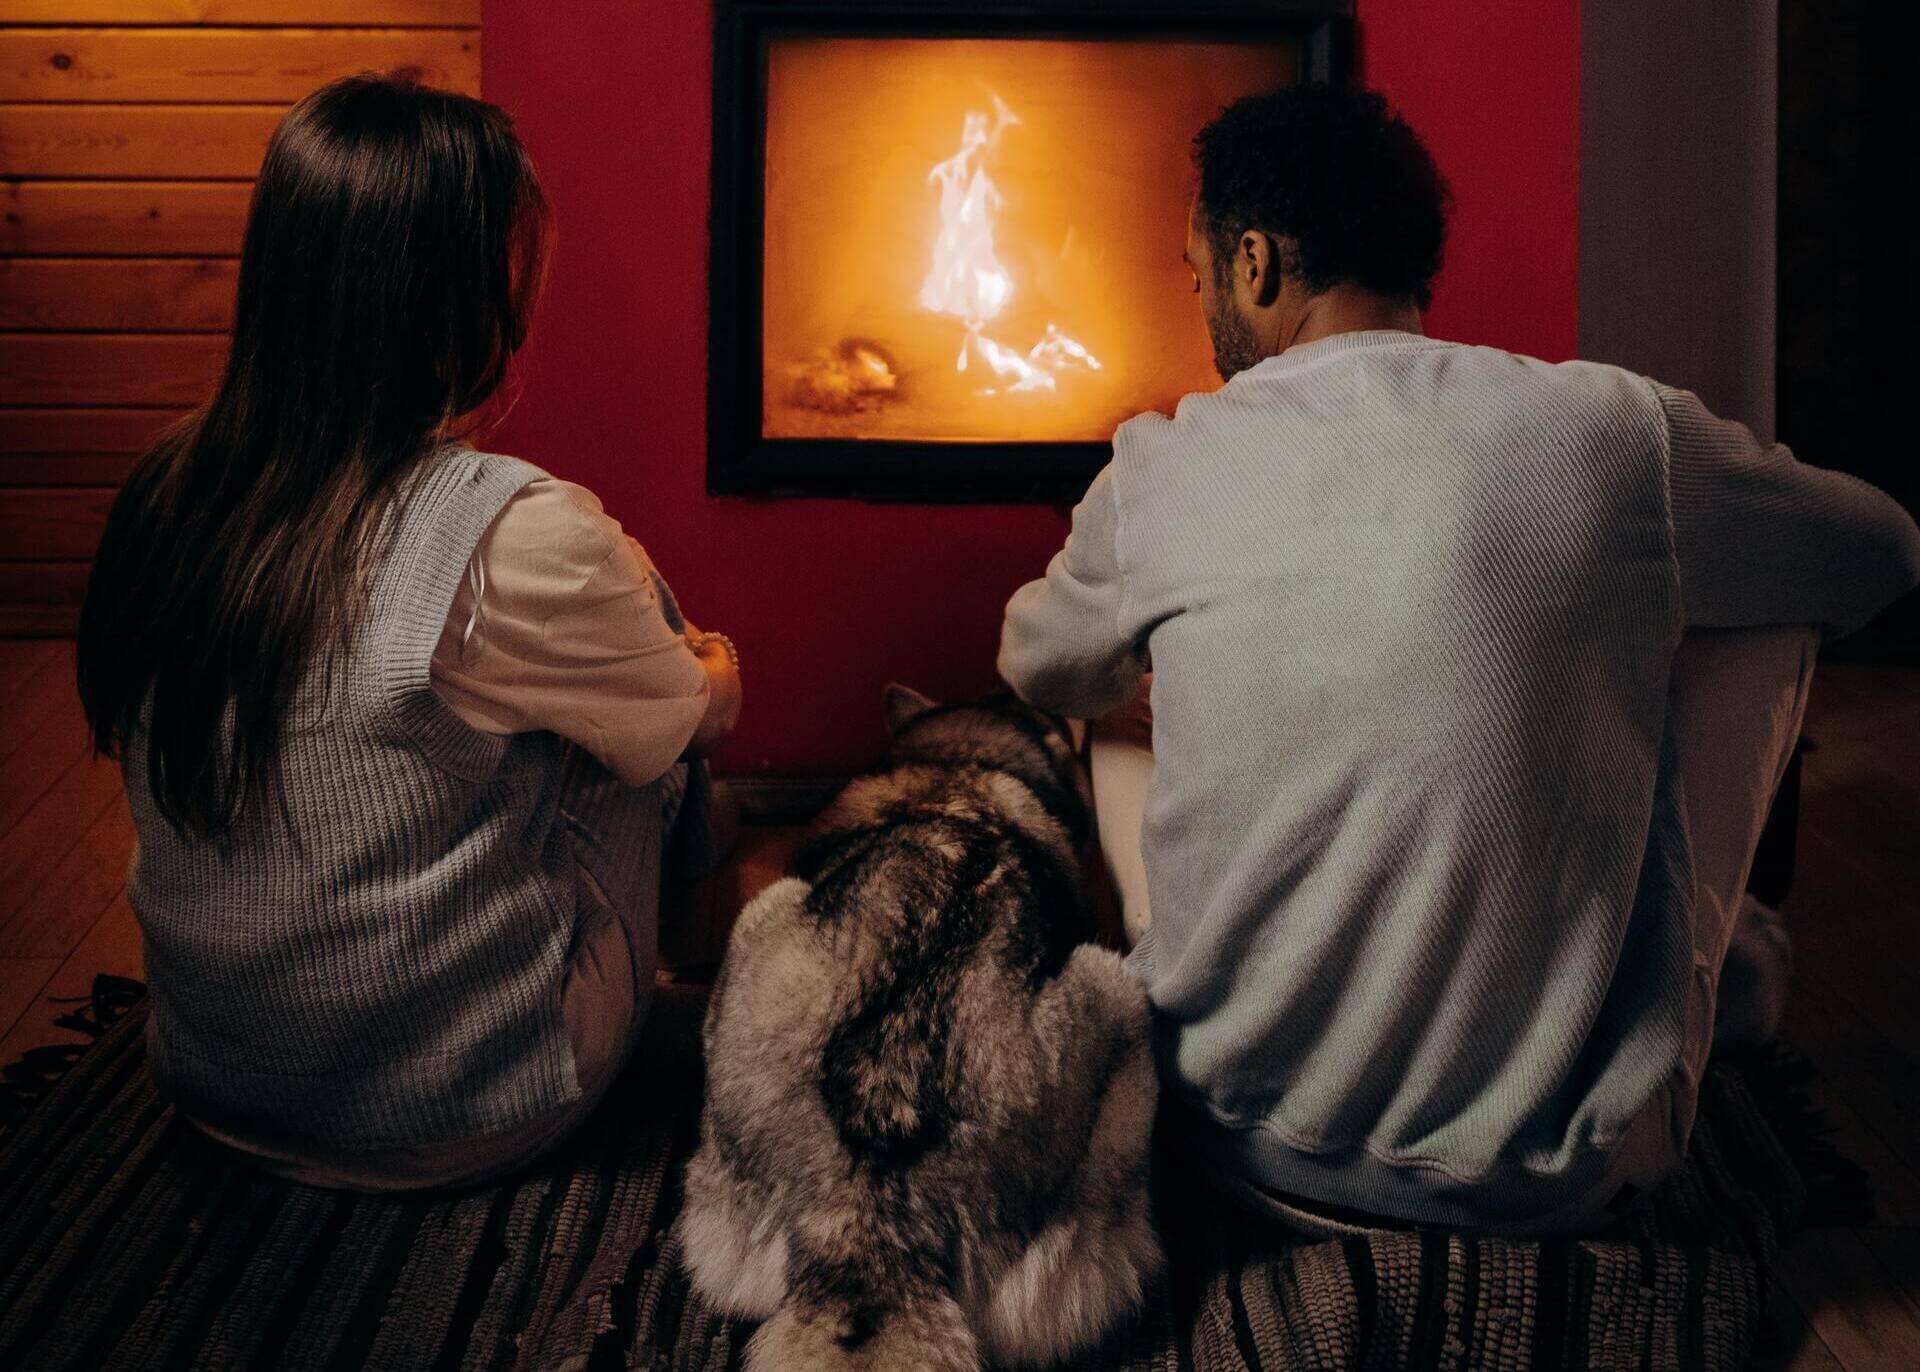 couple with a dog in front of fireplace